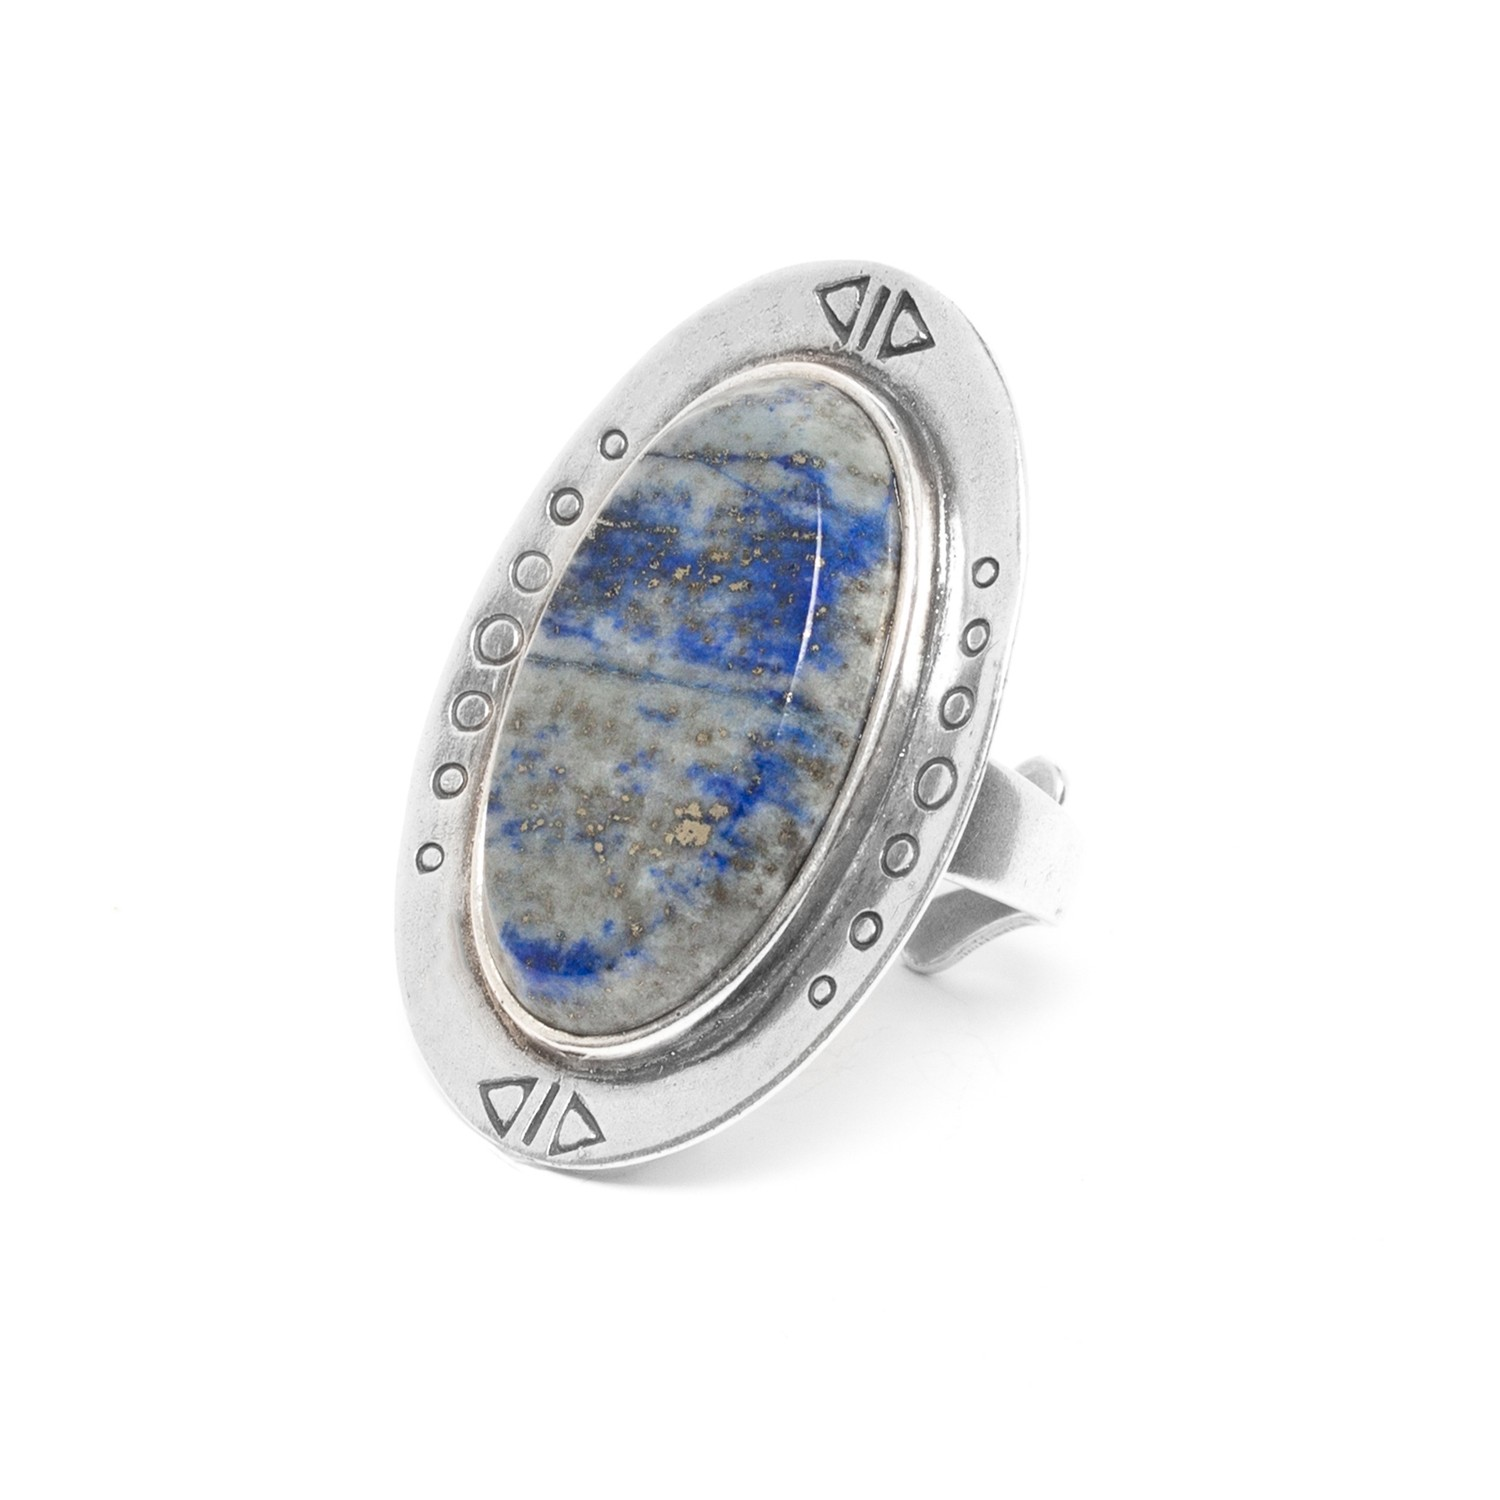 CONSTANTINE oval ring